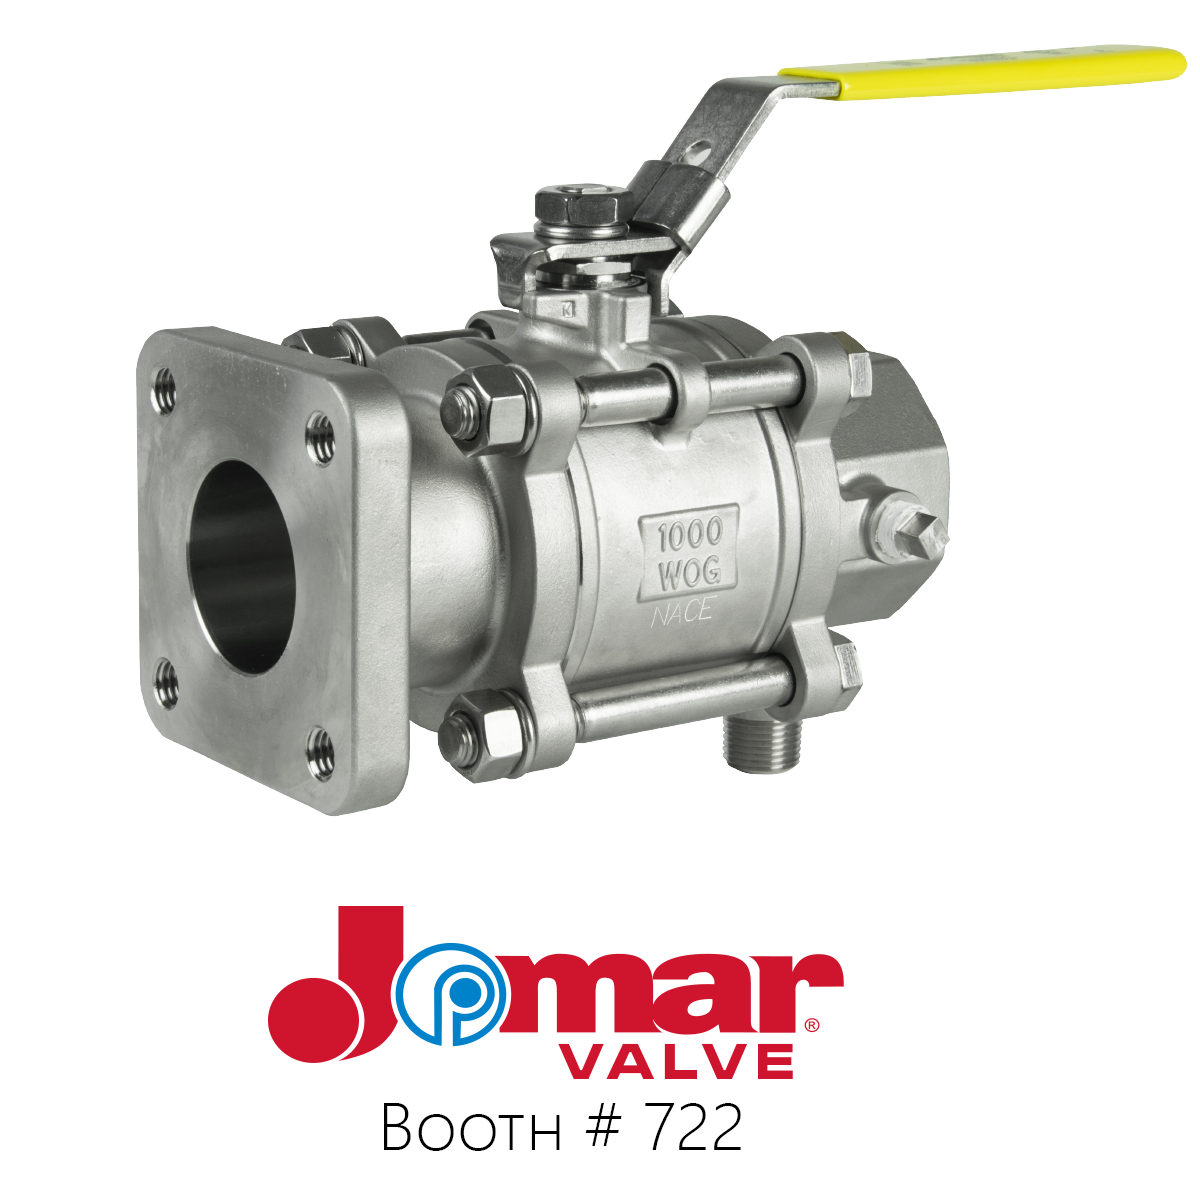 Jomar Valve's threaded (T-SS-1000N-4B) end connection propane truck valve. Photo courtesy of Jomar Valve